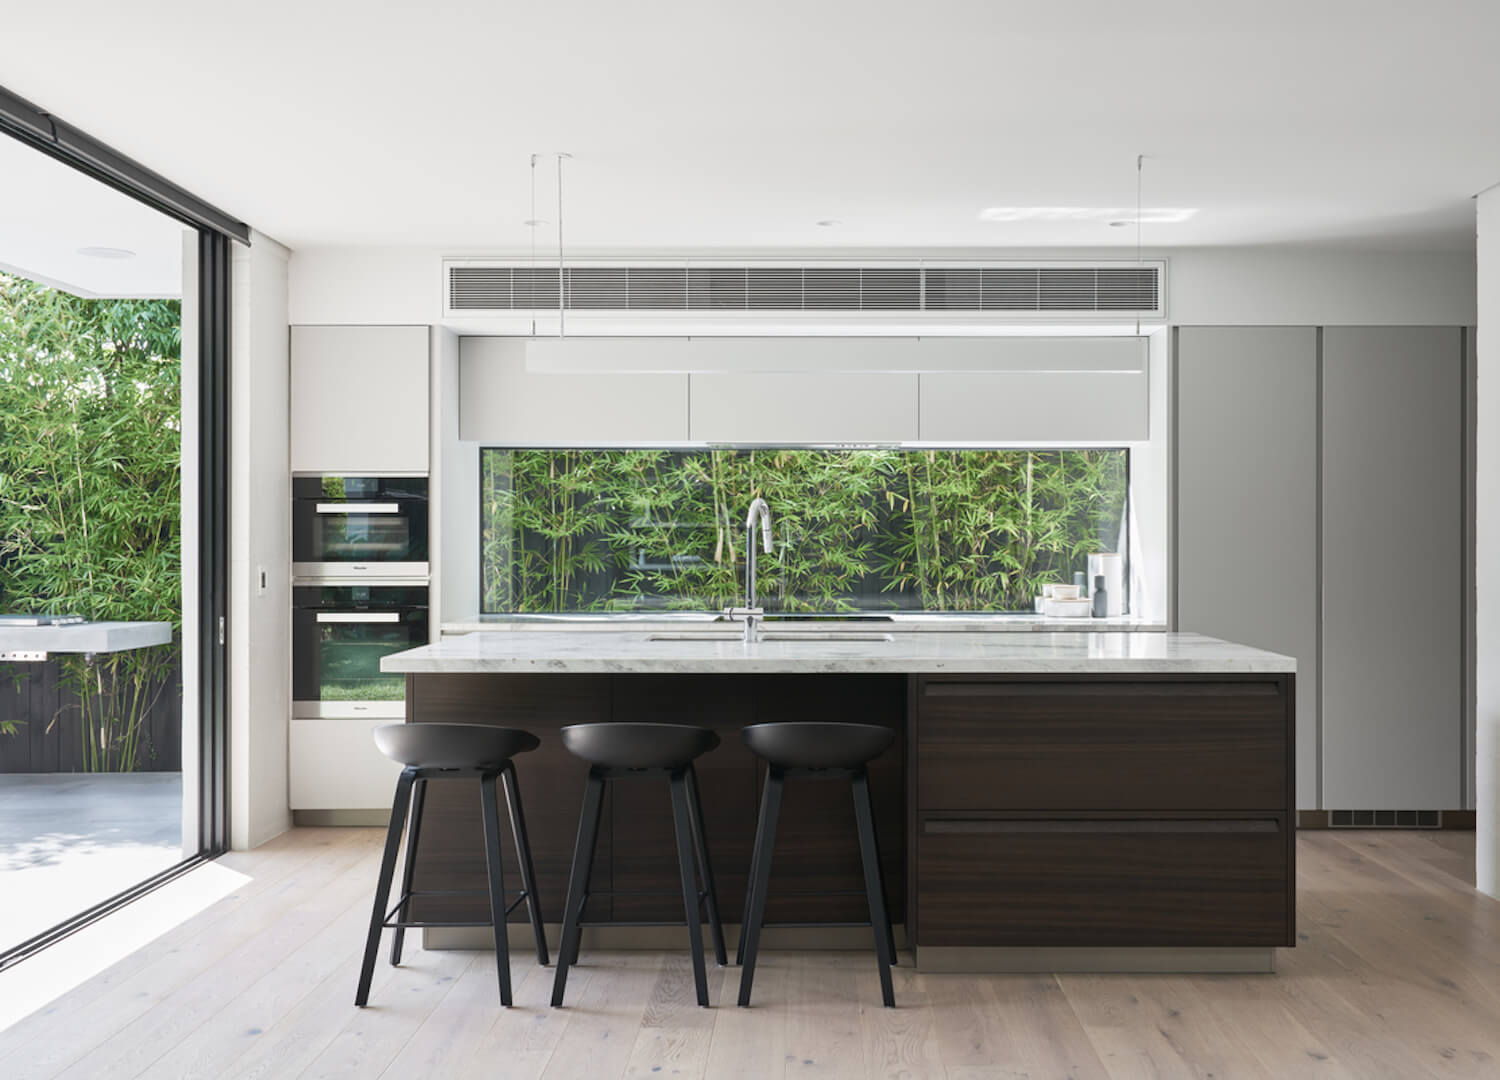 est living malvern east house pleysier perkins kitchen 10